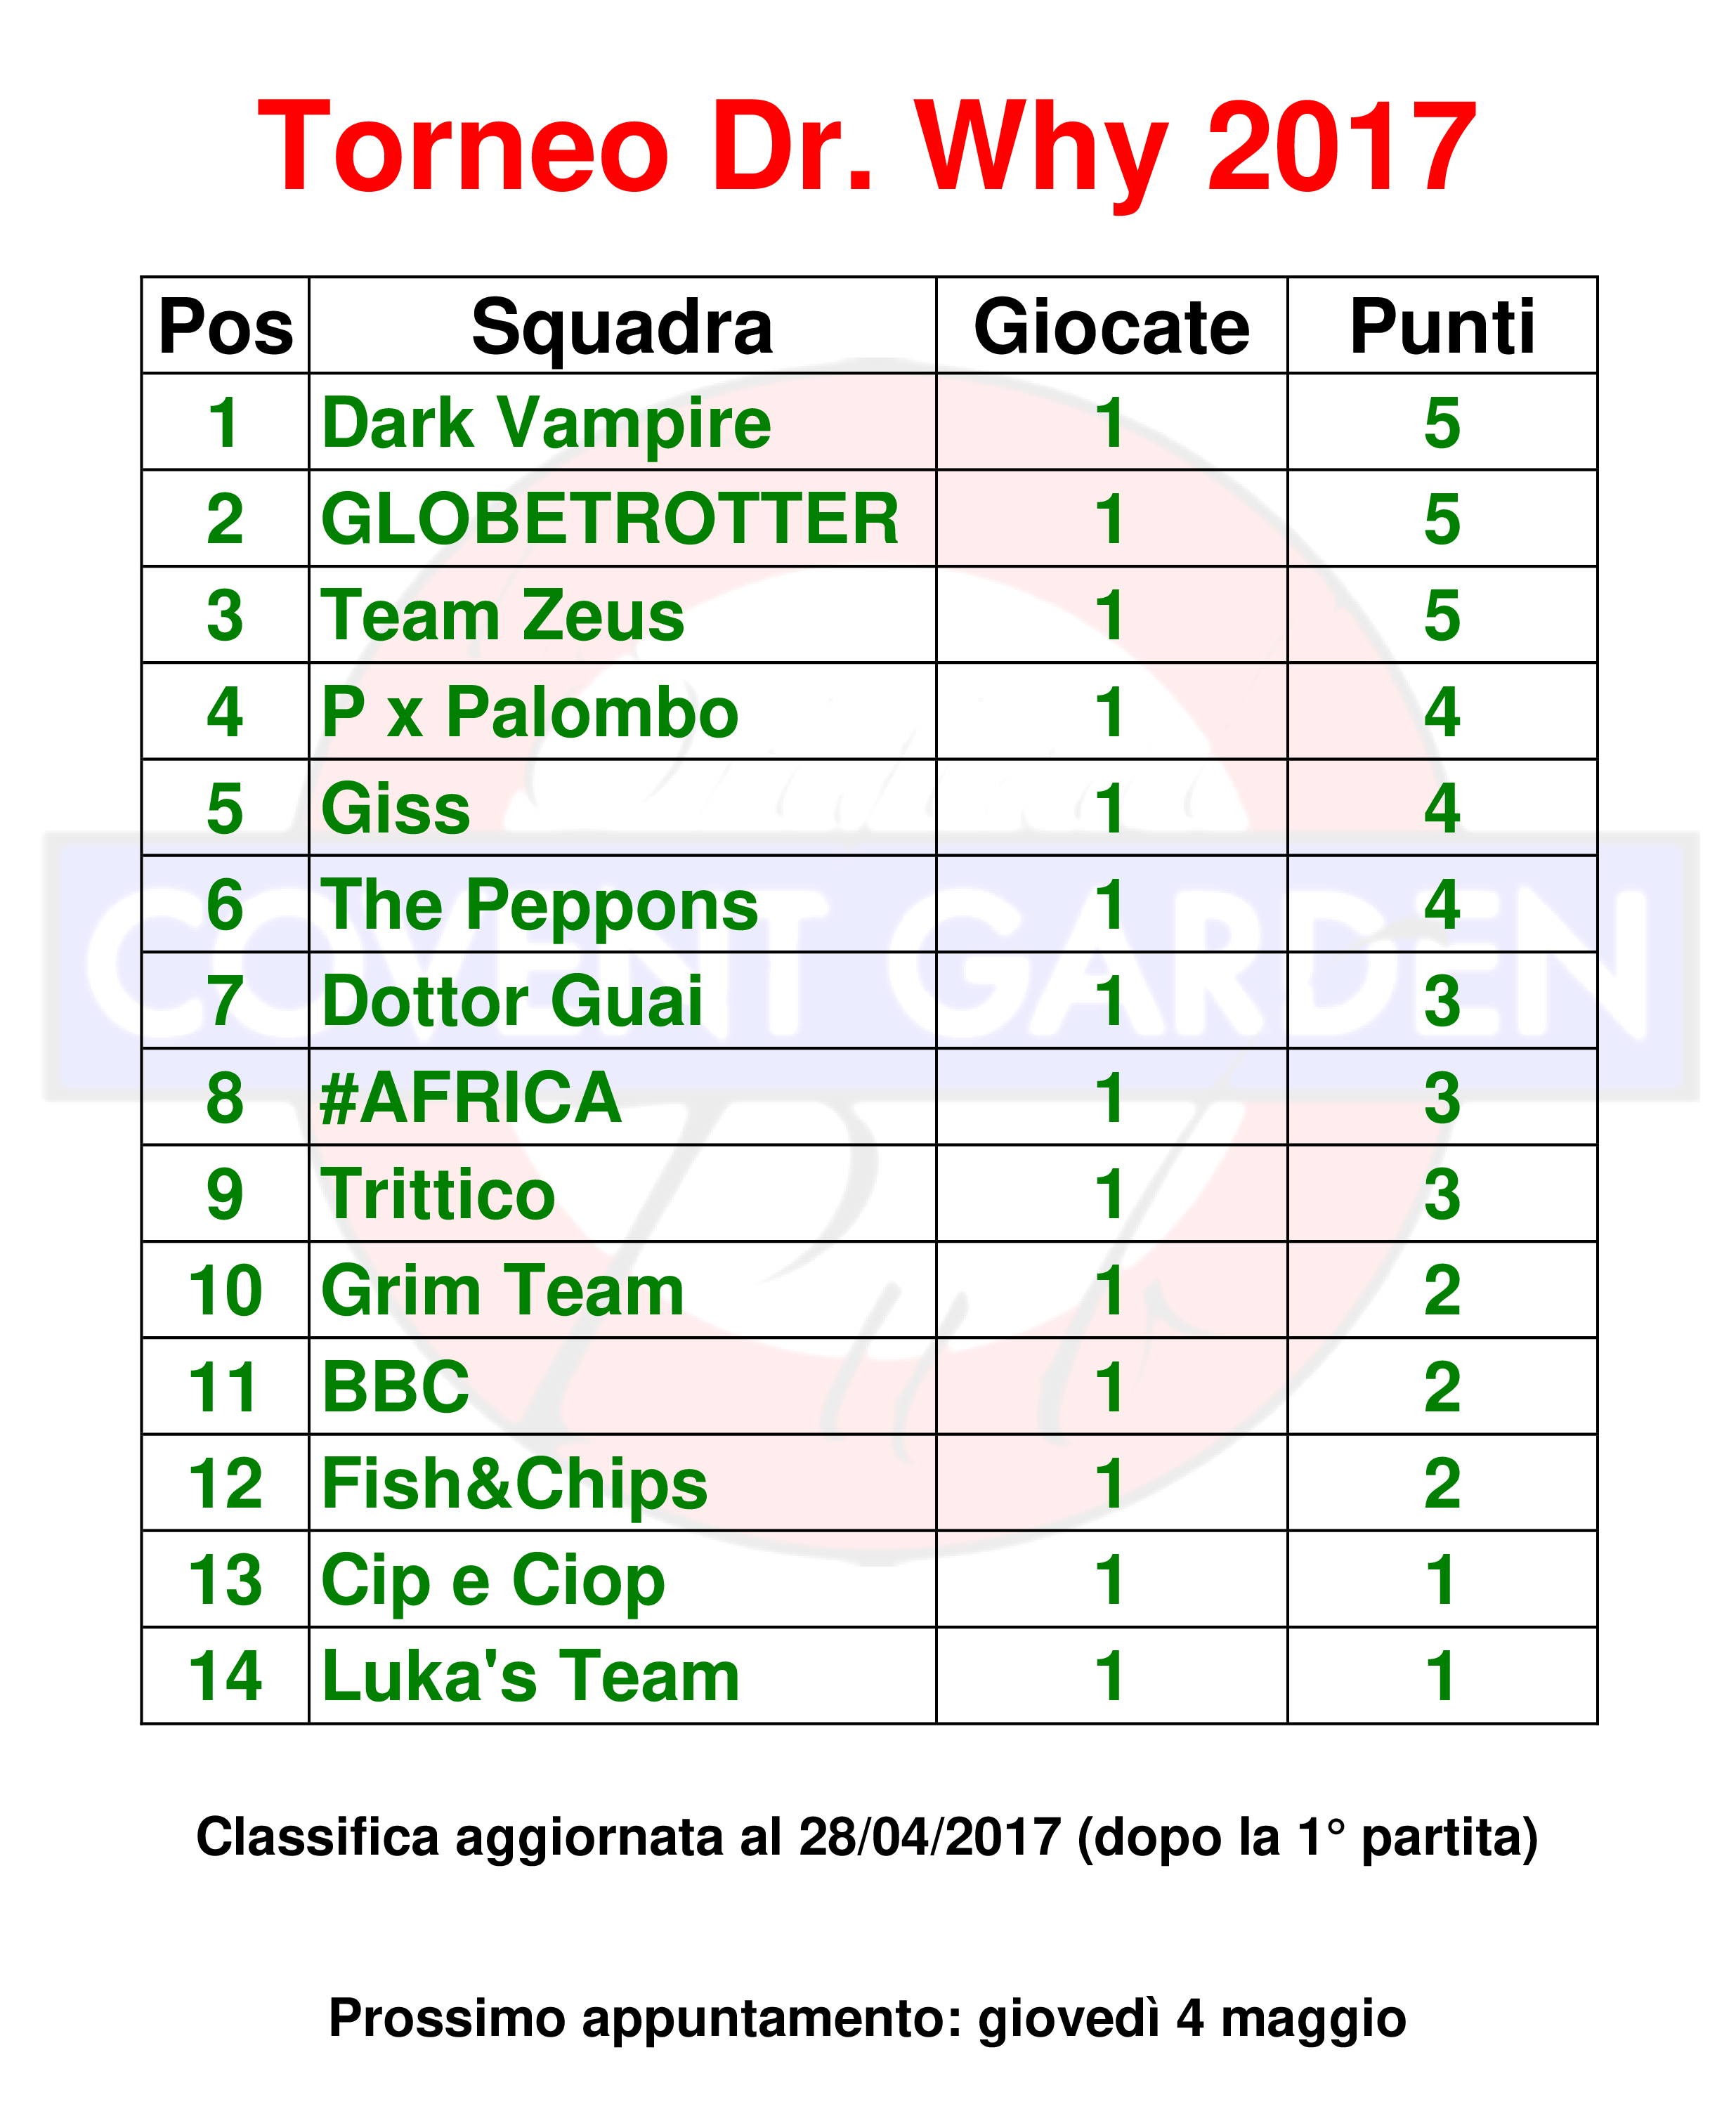 classifica1 - 27-04-2017.png